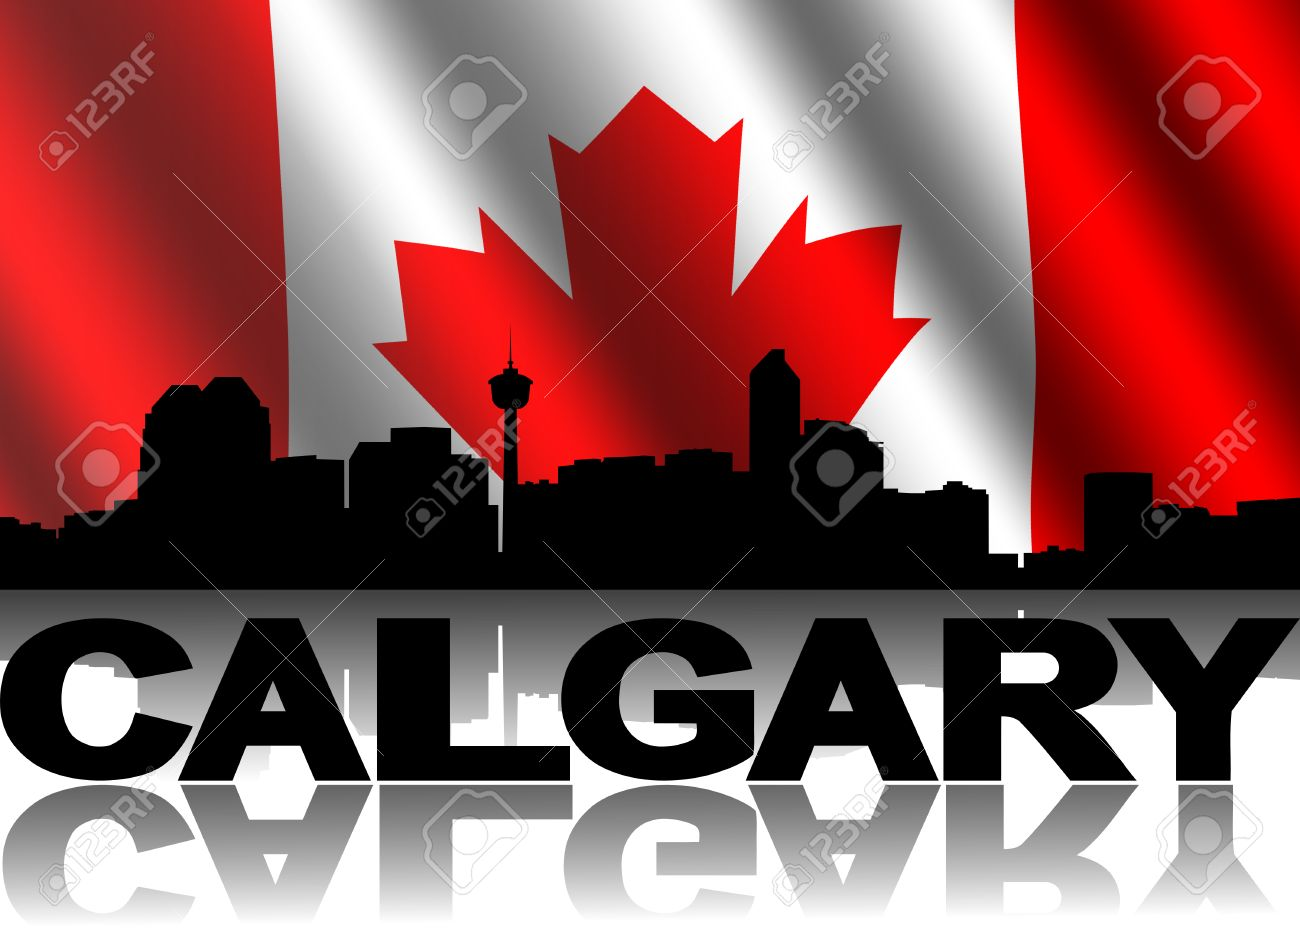 calgary skyline and text reflected with rippled canadian flag